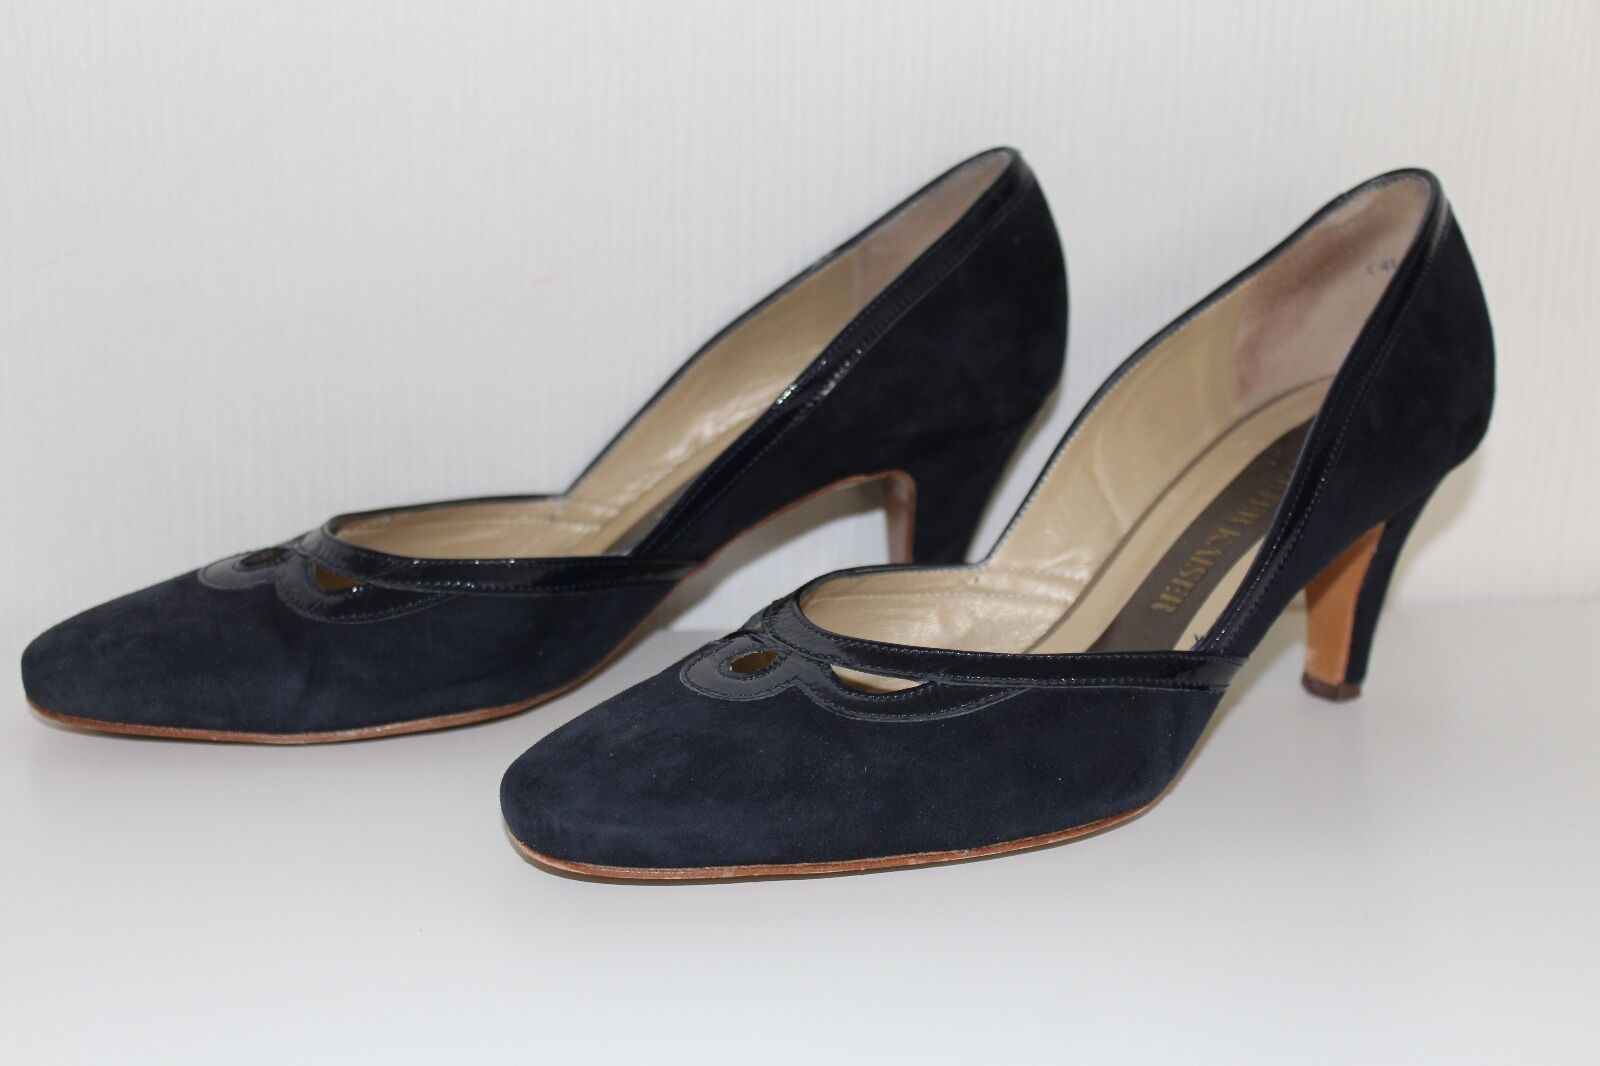 Peter Kaiser Damen SCHUHE PUMPS Größe 37 Wildleder Echtleder leather SHOES HEELS